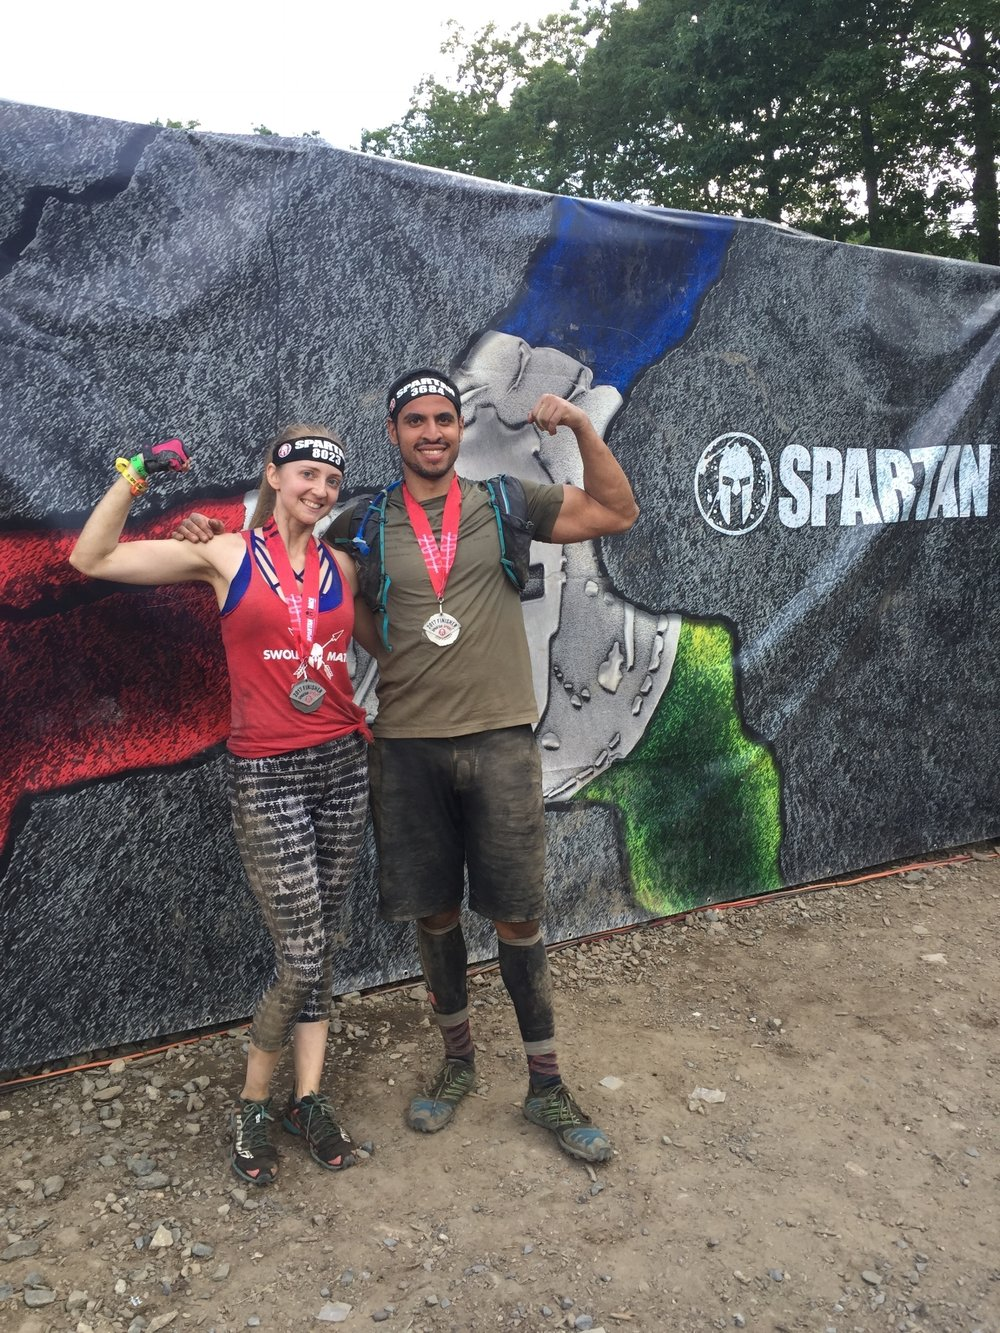 Spartan SGX trainee Silvija and I,